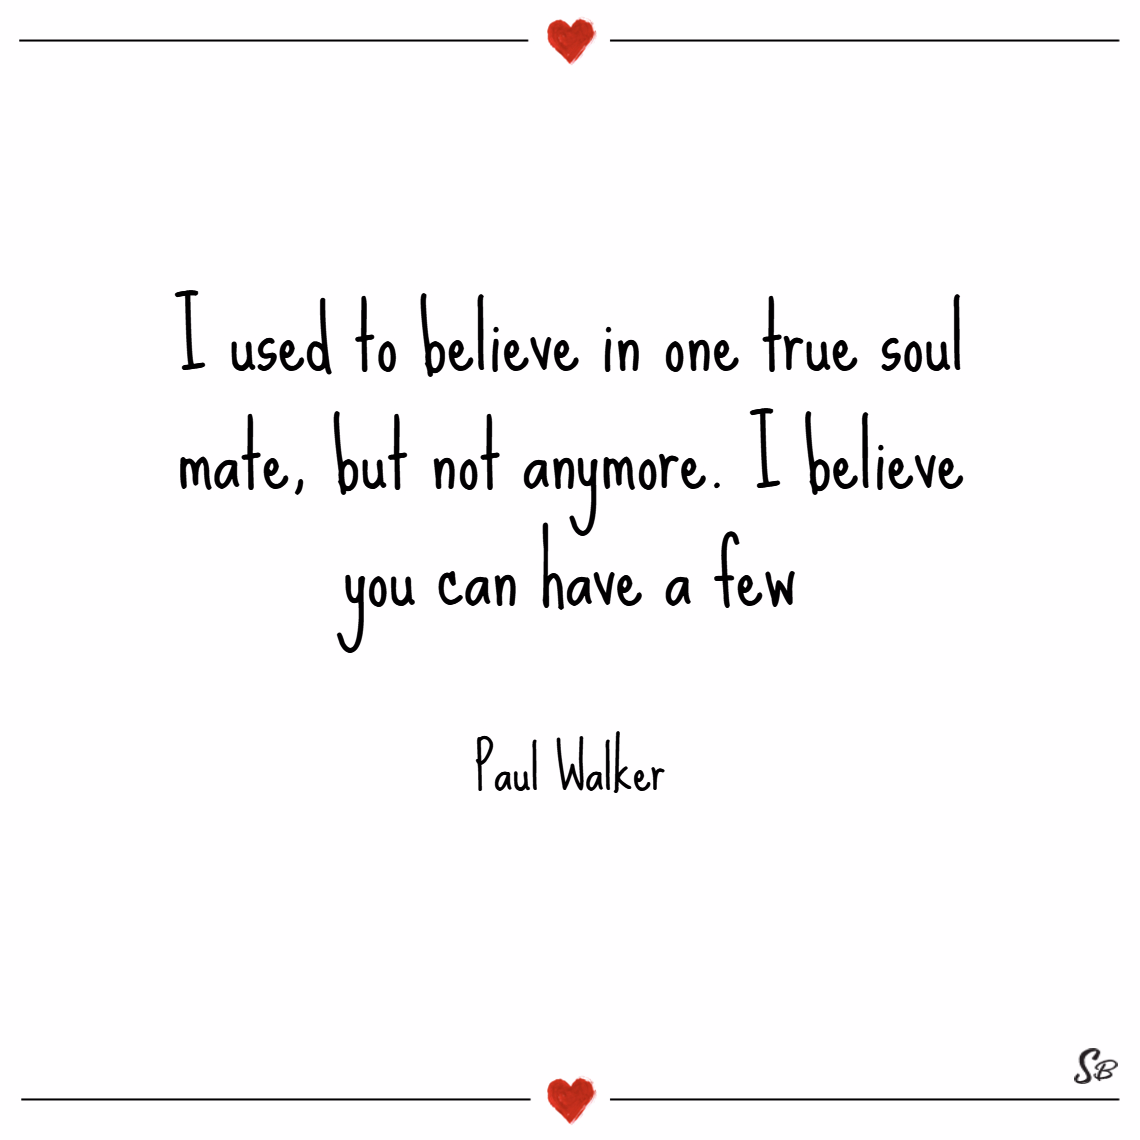 I used to believe in one true soul mate, but not anymore. i believe you can have a few. – paul walker